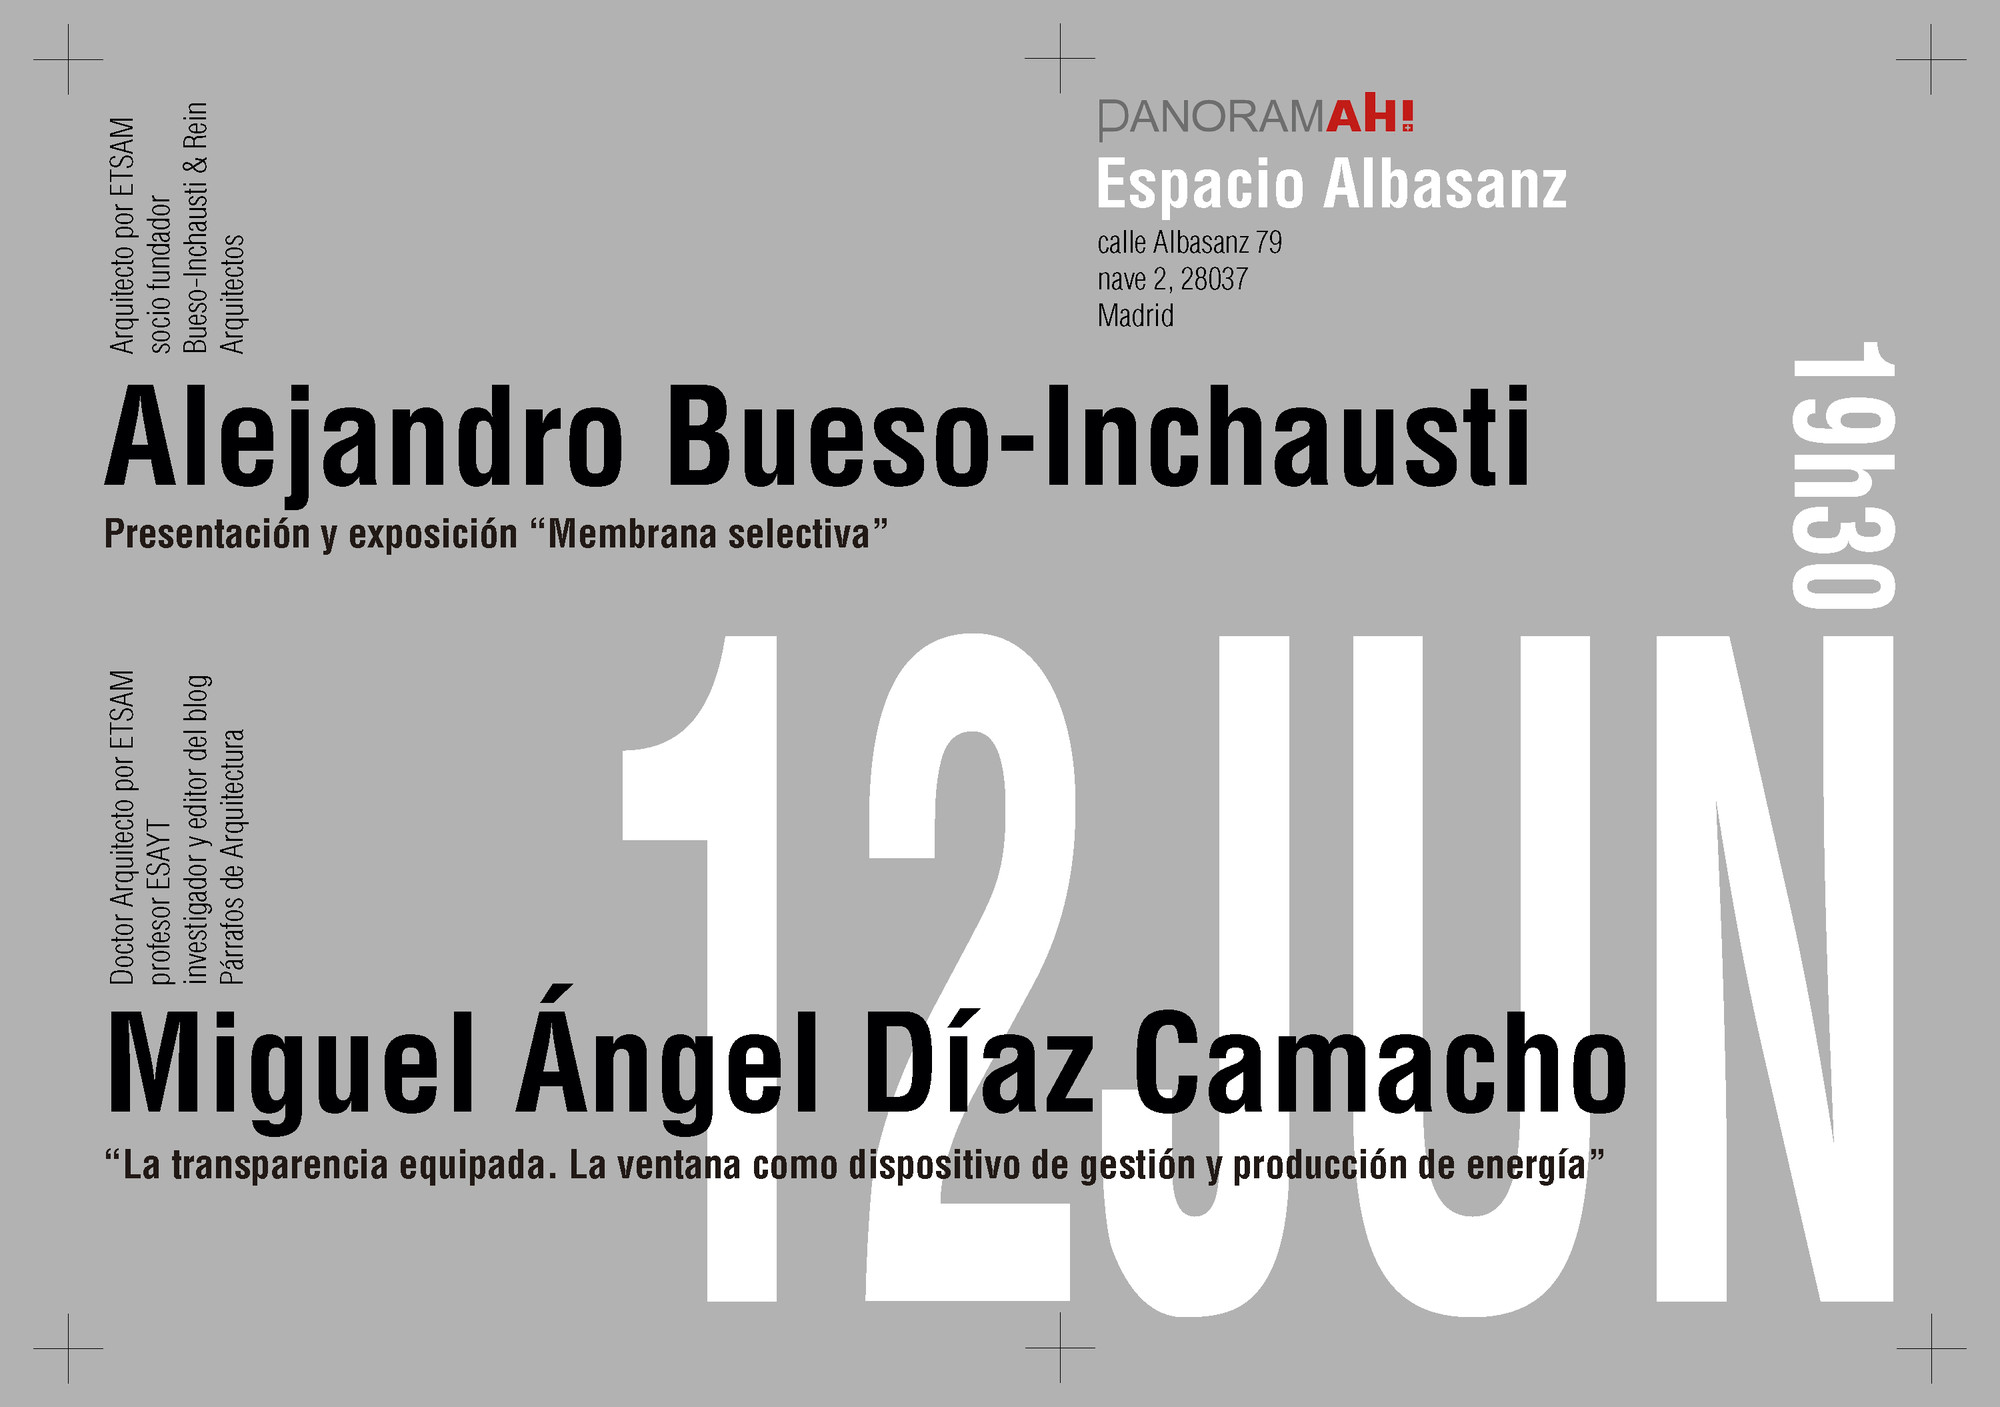 Conferencia bueso inchausti rein arquitectos madc for Muebles inchausti